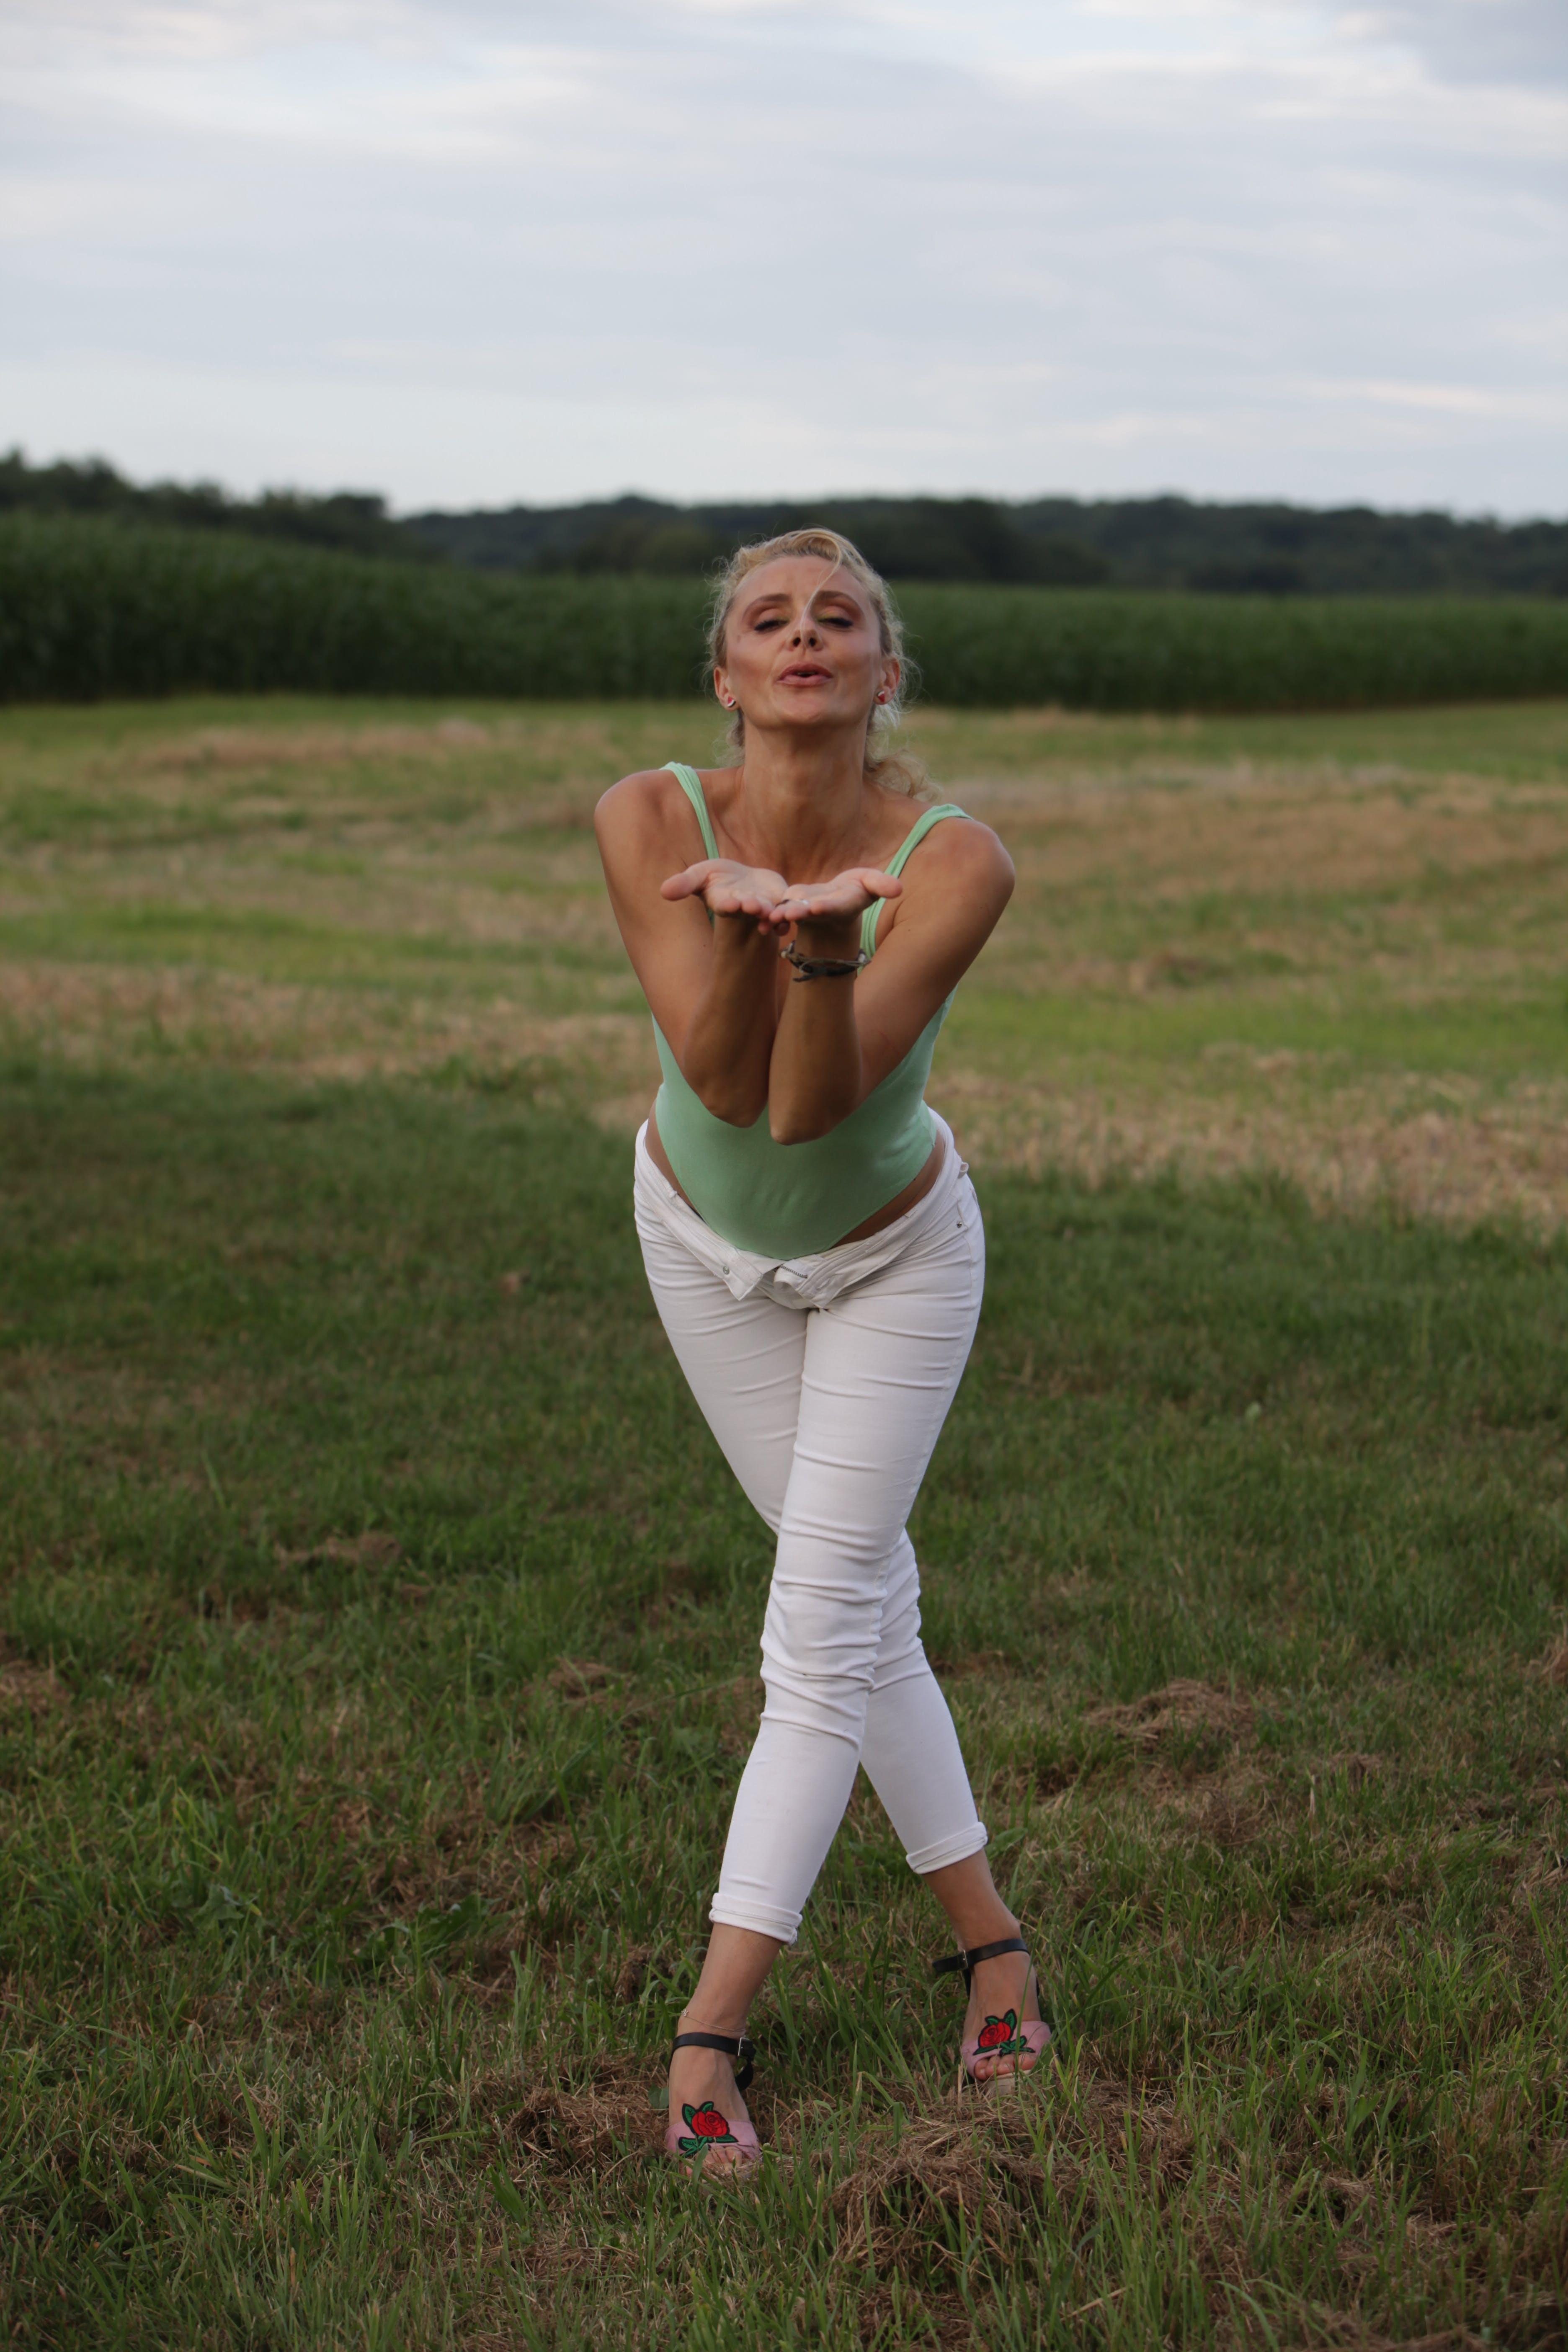 Woman Blowing While Standing on Green Grass